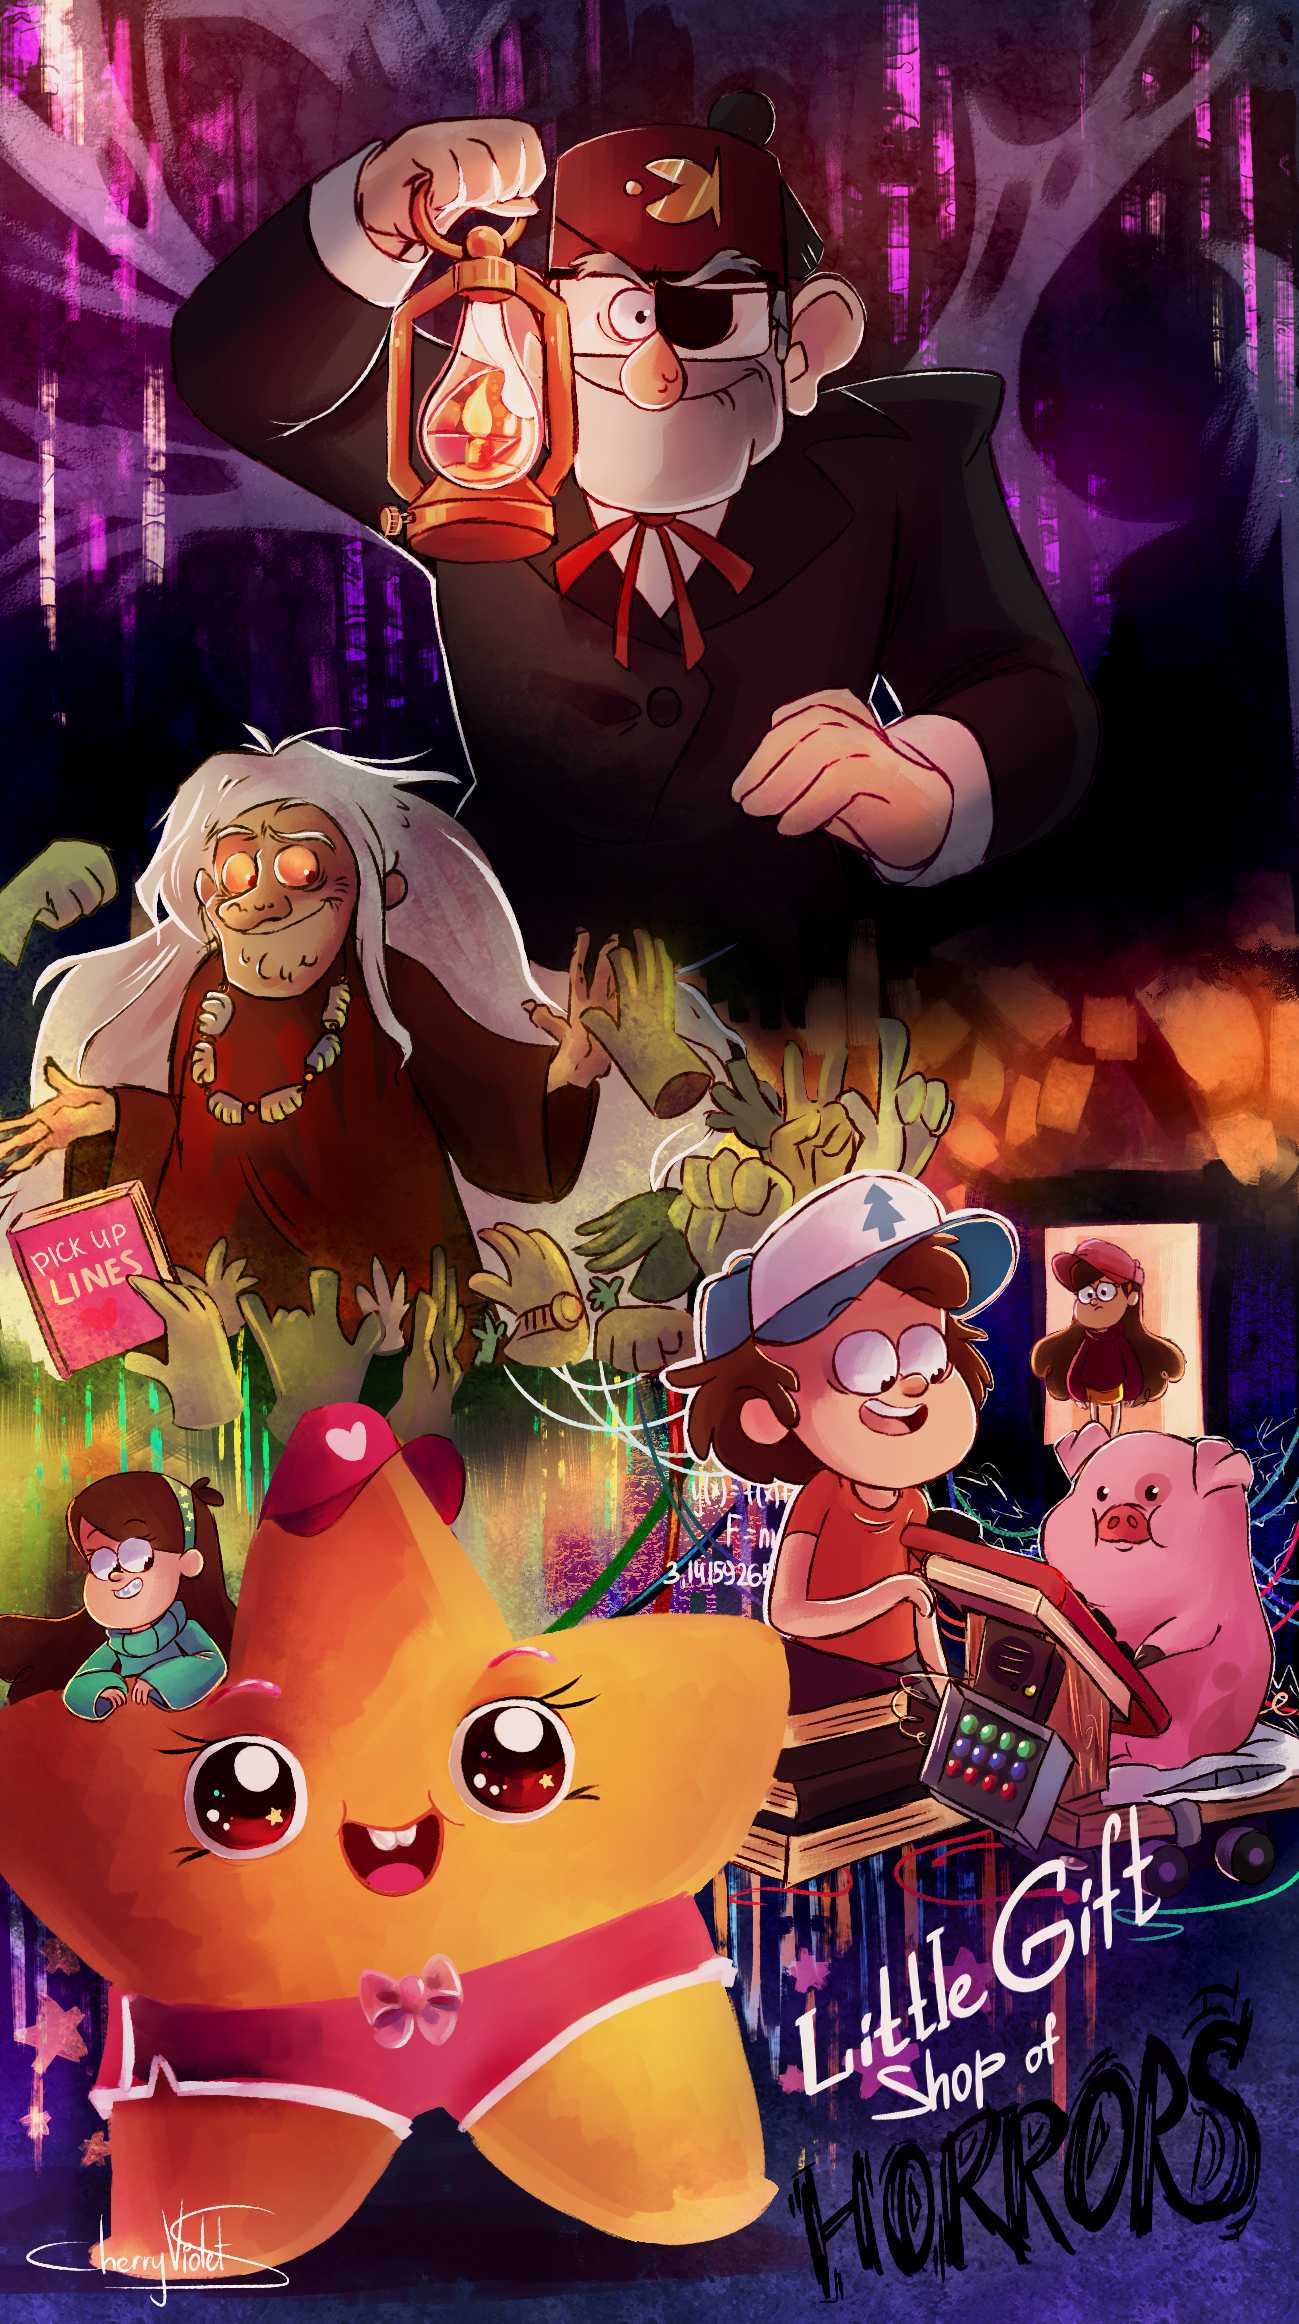 Little Gift Shop Of Horrors By Cherryviolets On Deviantart Gravity Falls Episodes New Gravity Falls Gravity Falls